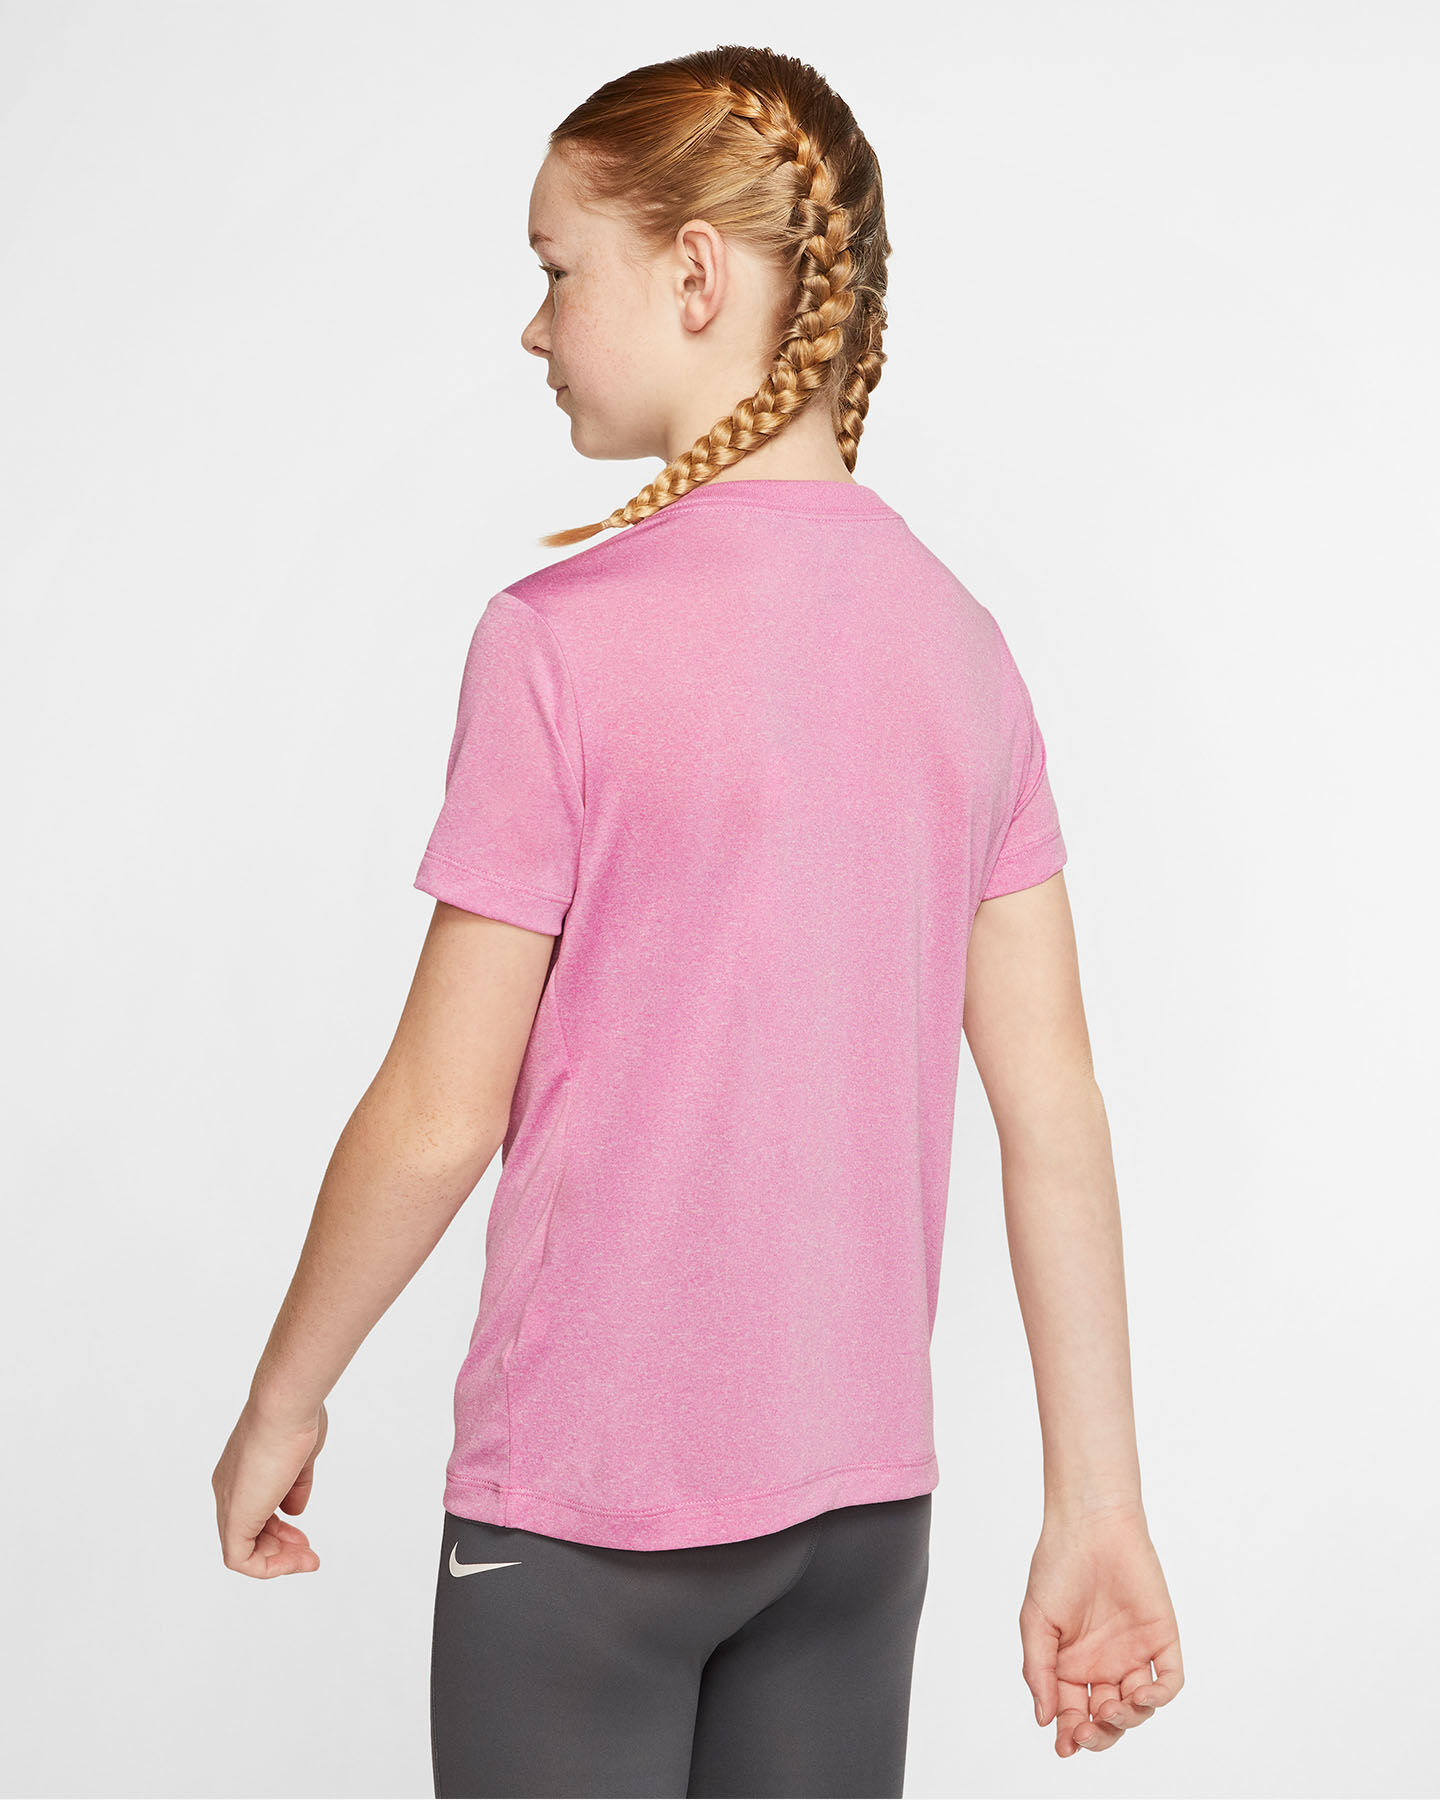 T-Shirt NIKE DRI-FIT JR S5162697 scatto 3